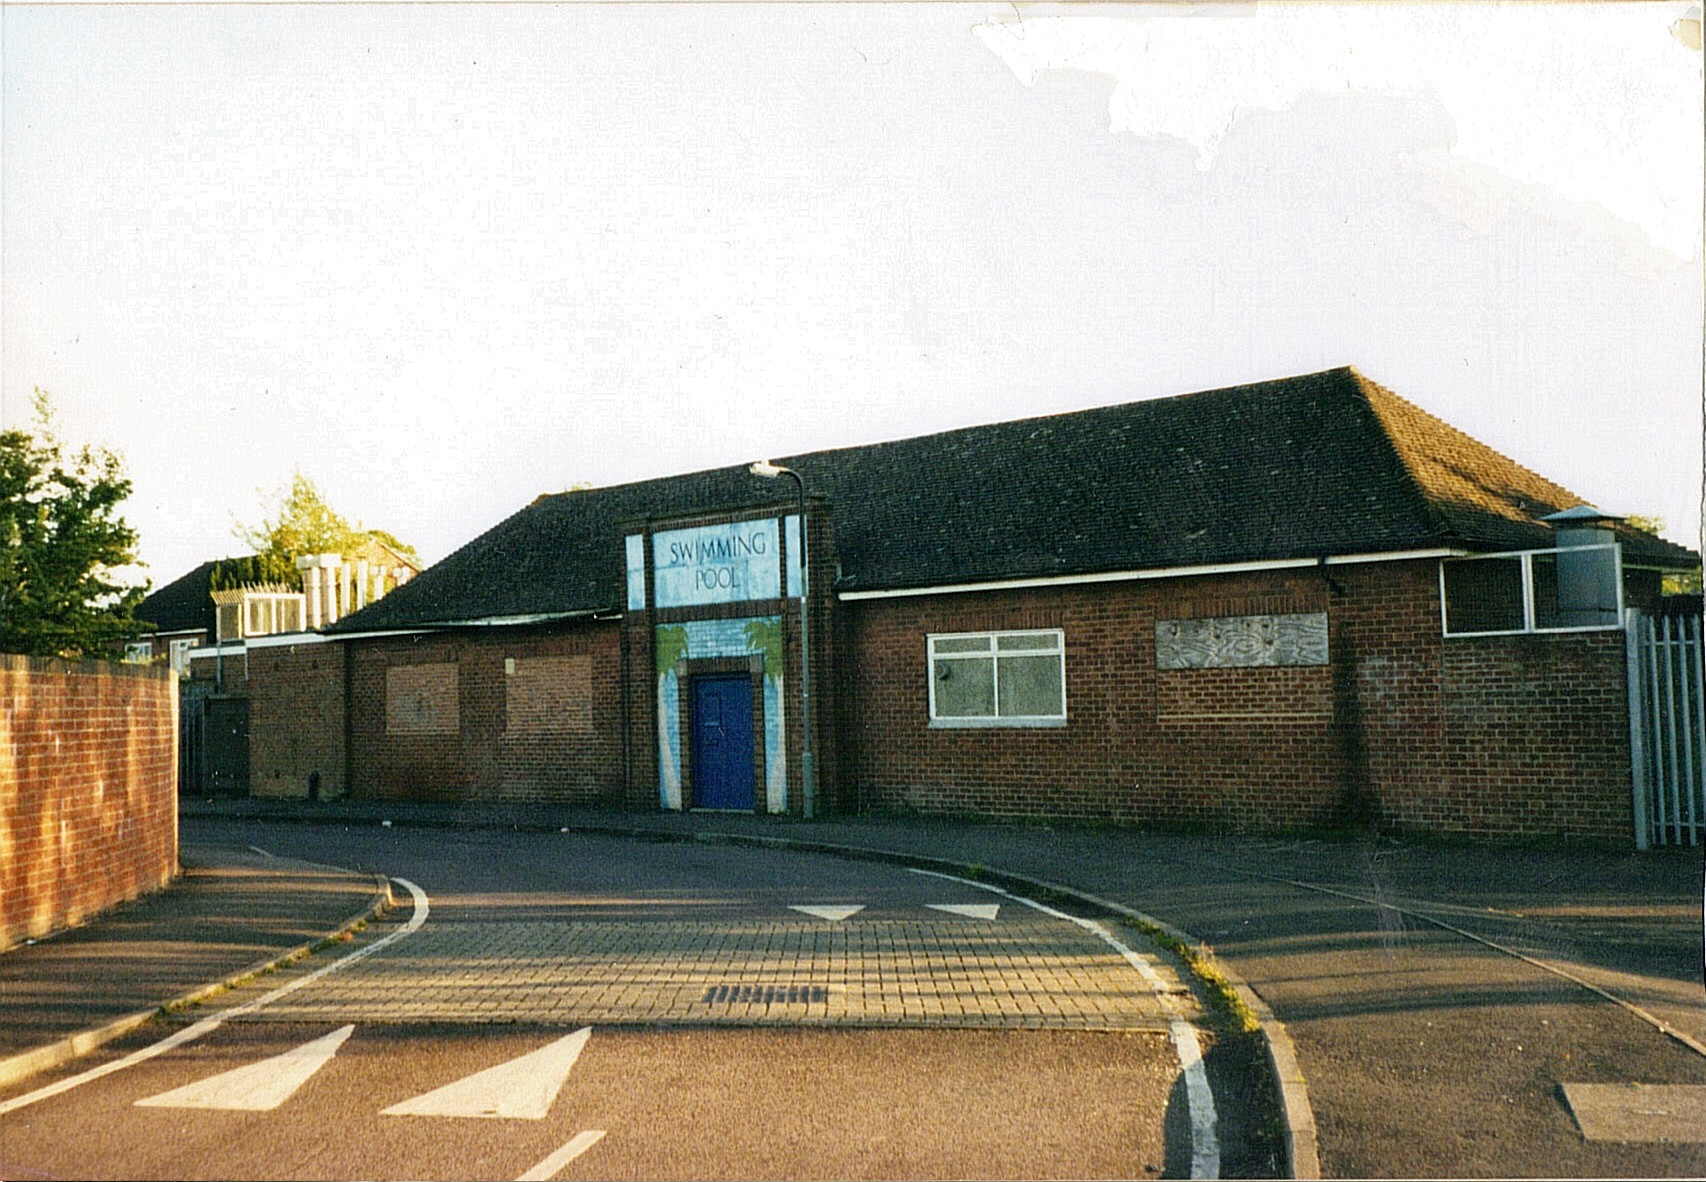 (2882492 bytes) the popular Woodgreen [[swiningpool]] in 2004. It was renovated in 2009 and reopened in 2010. [[Category:Banbury]] [[Category:Swimingpools]]